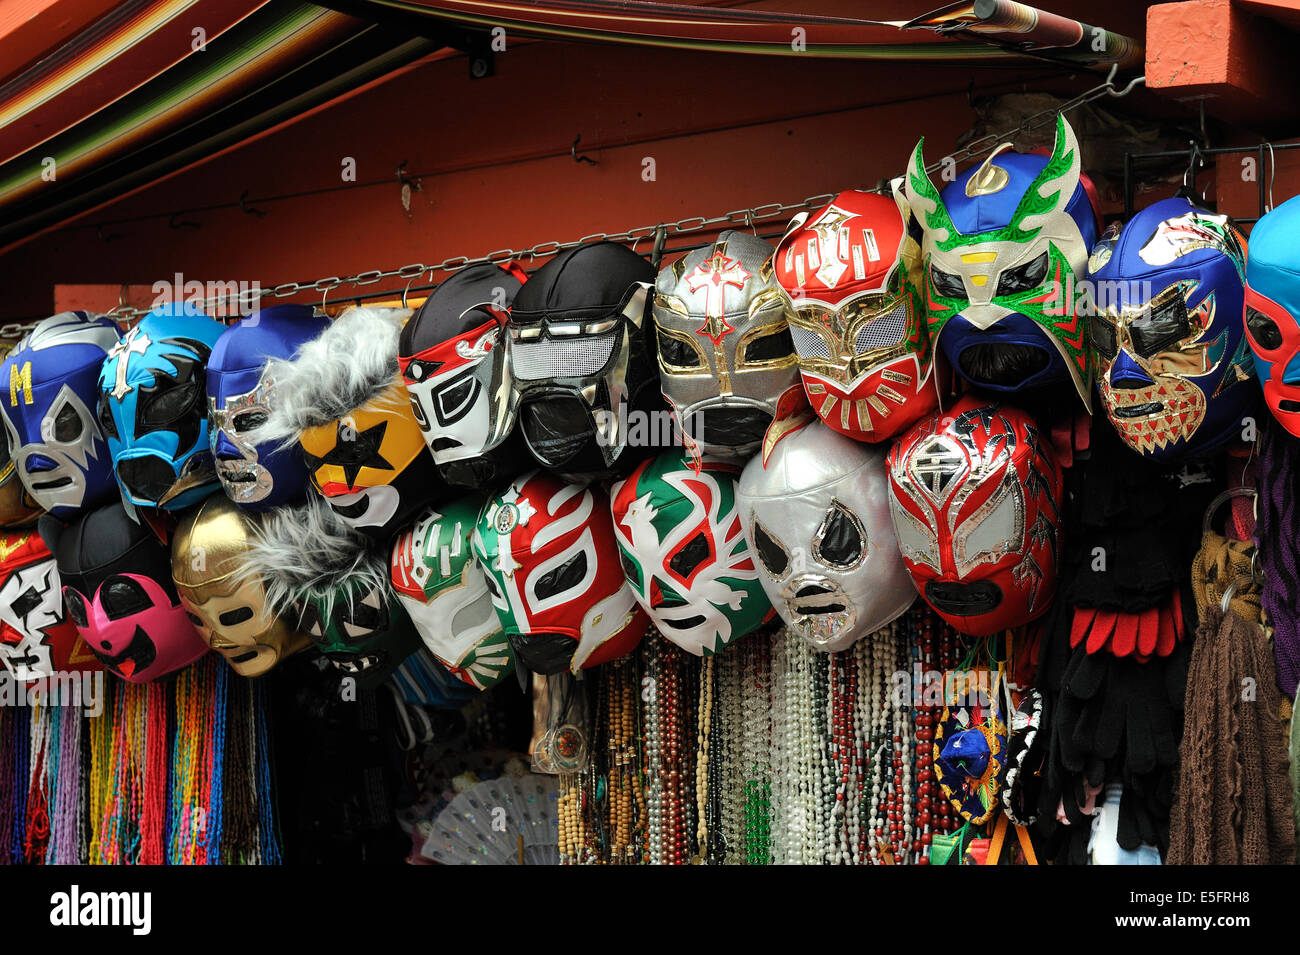 Mexican Wrestlers' masks. - Stock Image